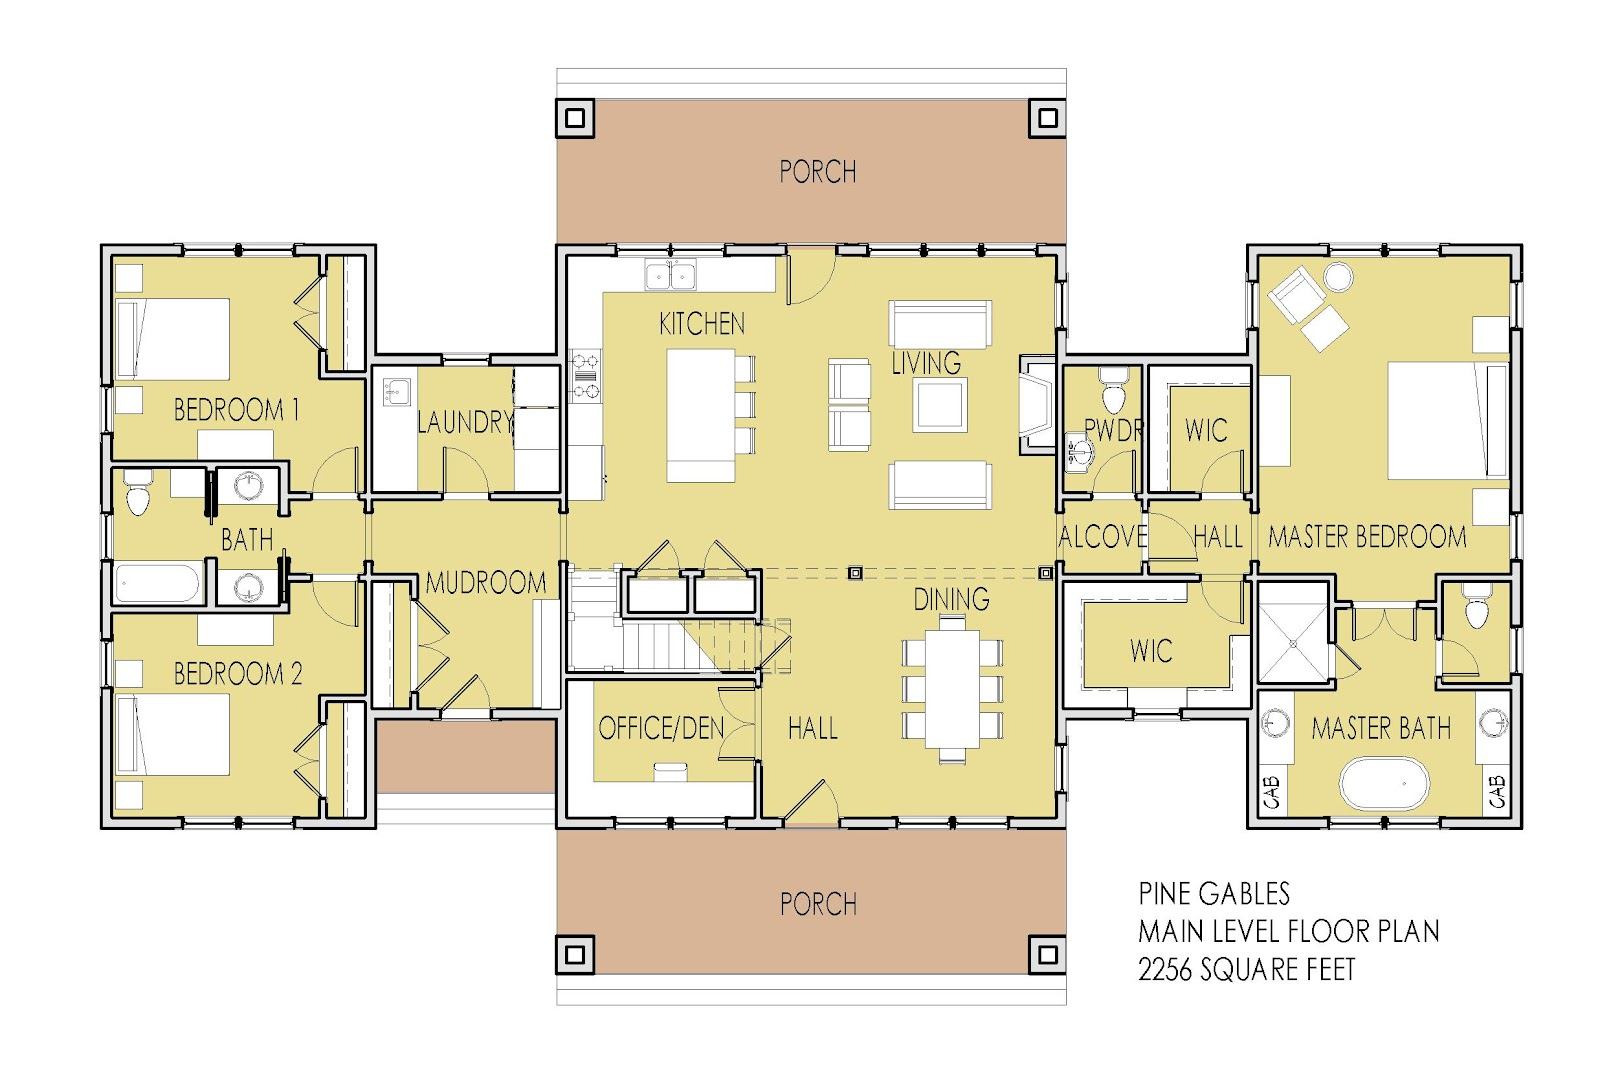 Simply elegant home designs blog september 2012 for Main level floor plans